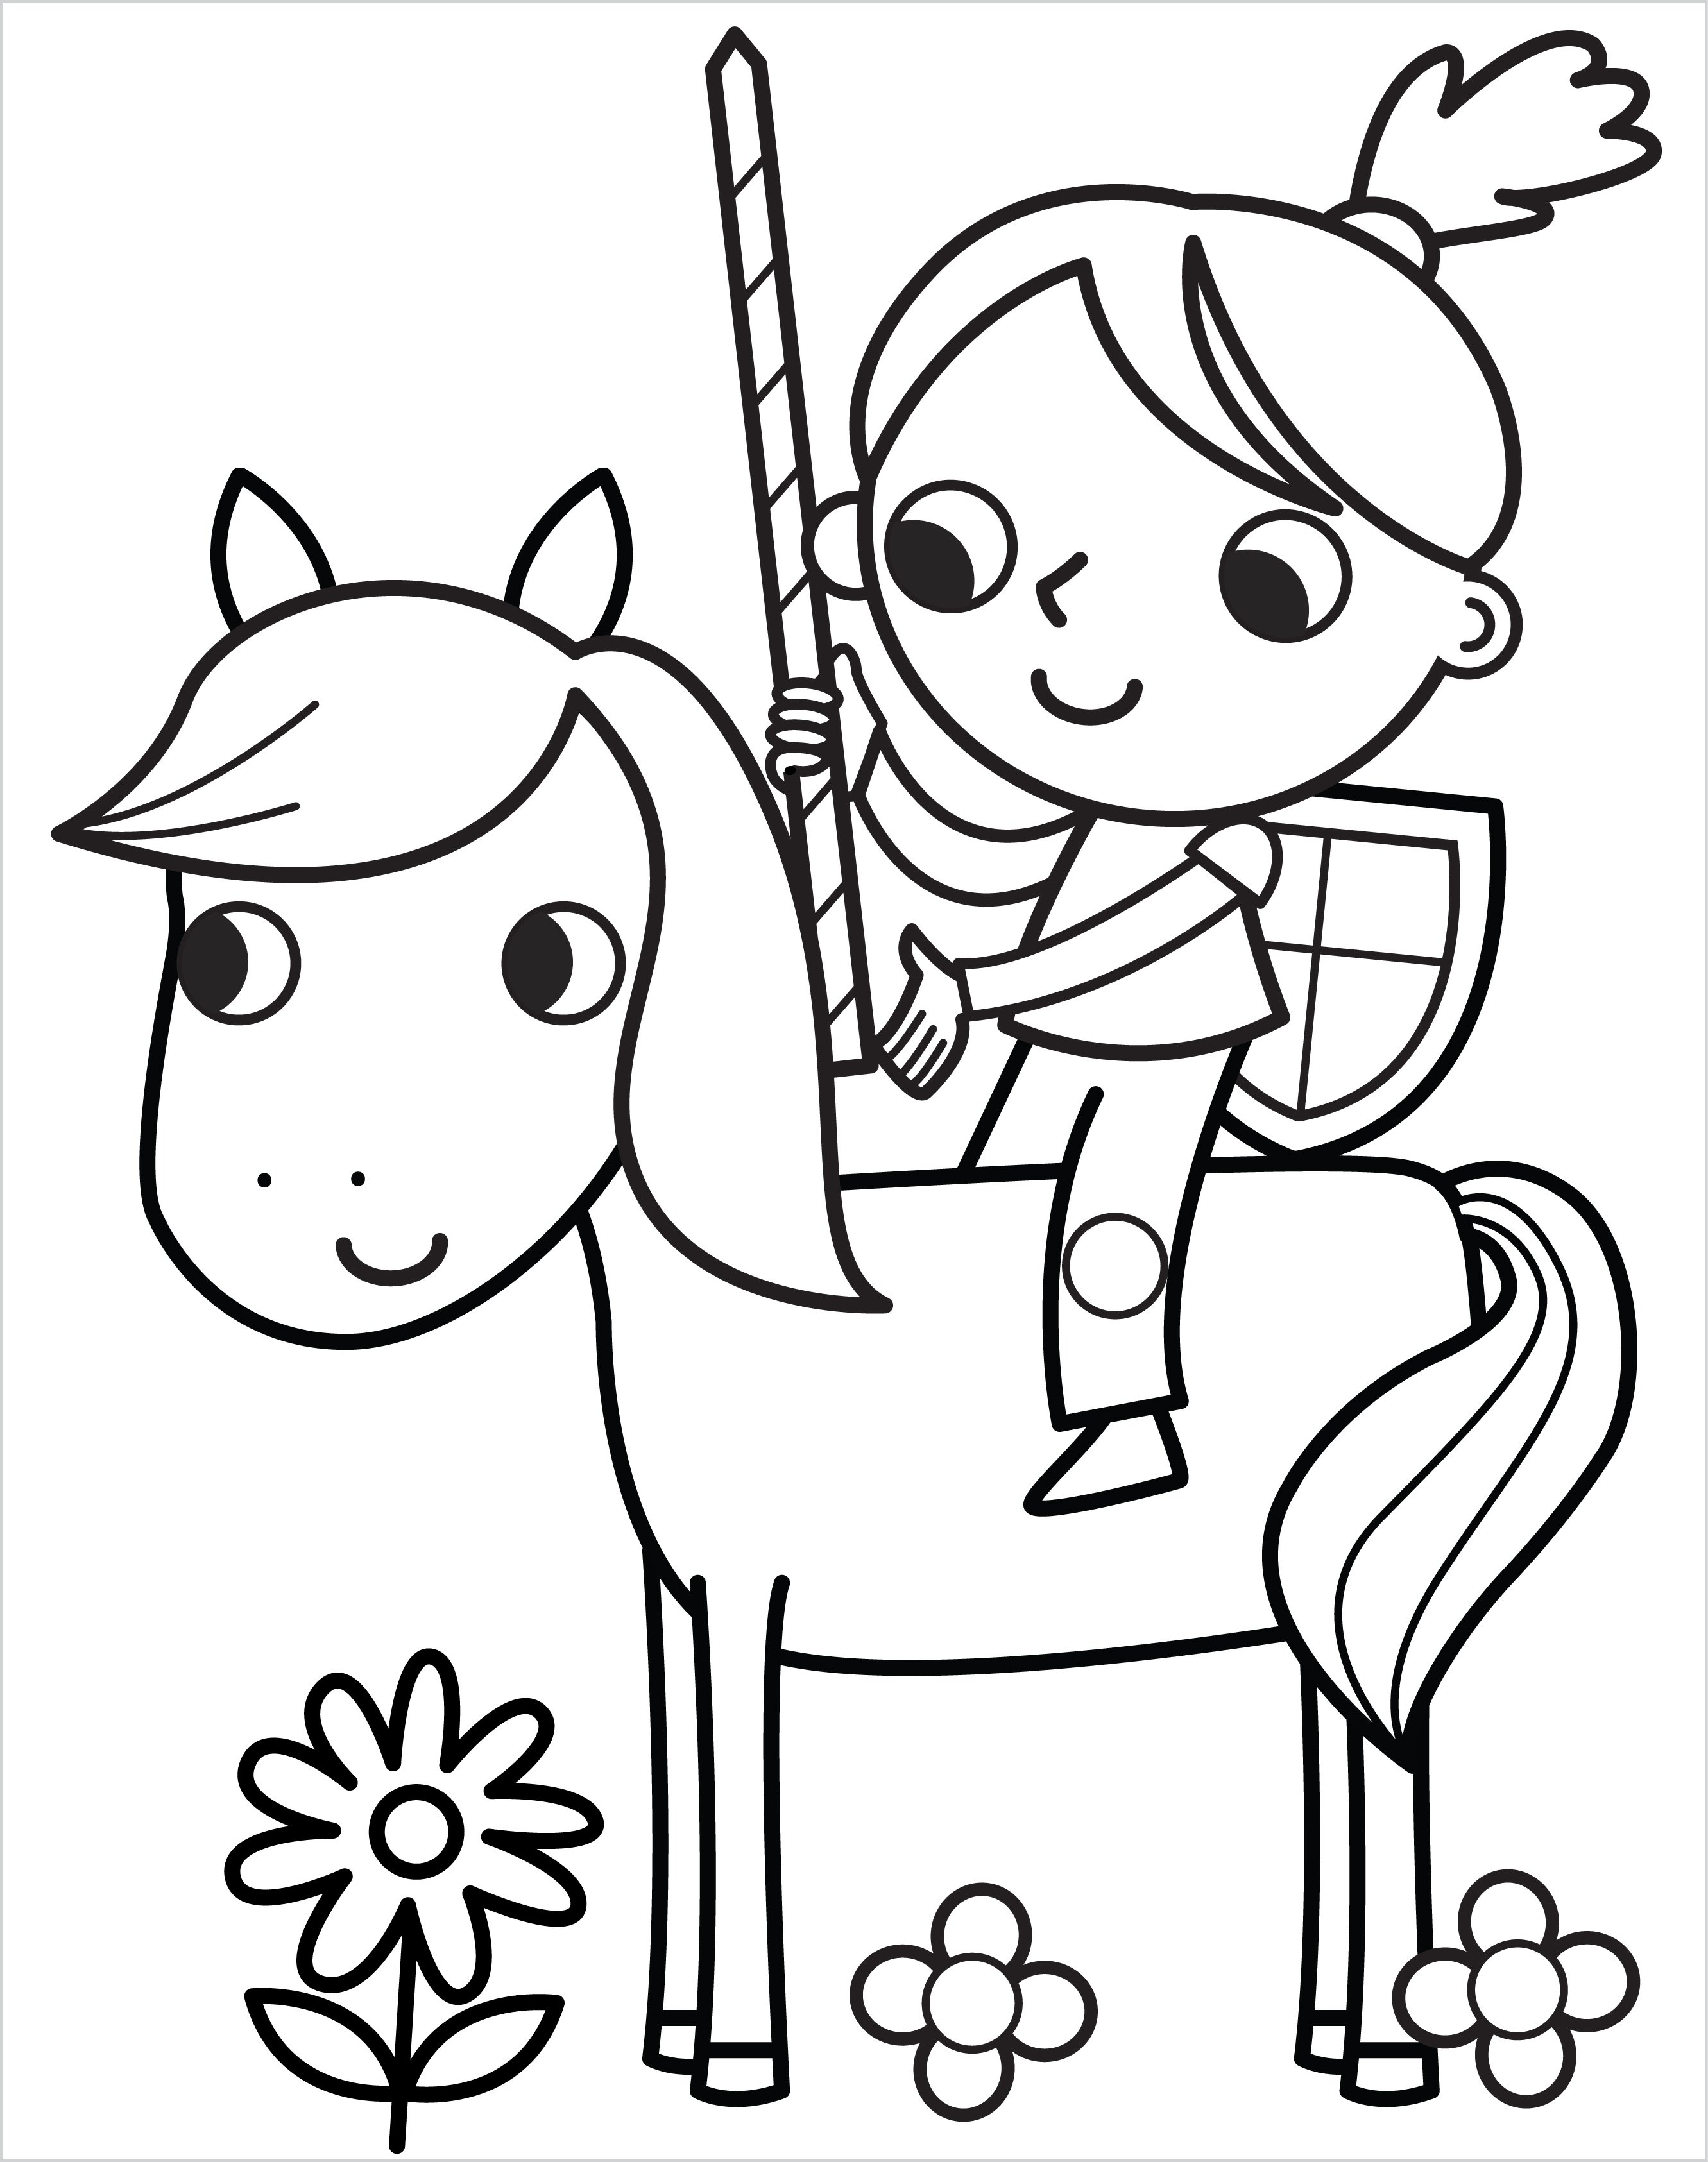 1.Girl knight on horse